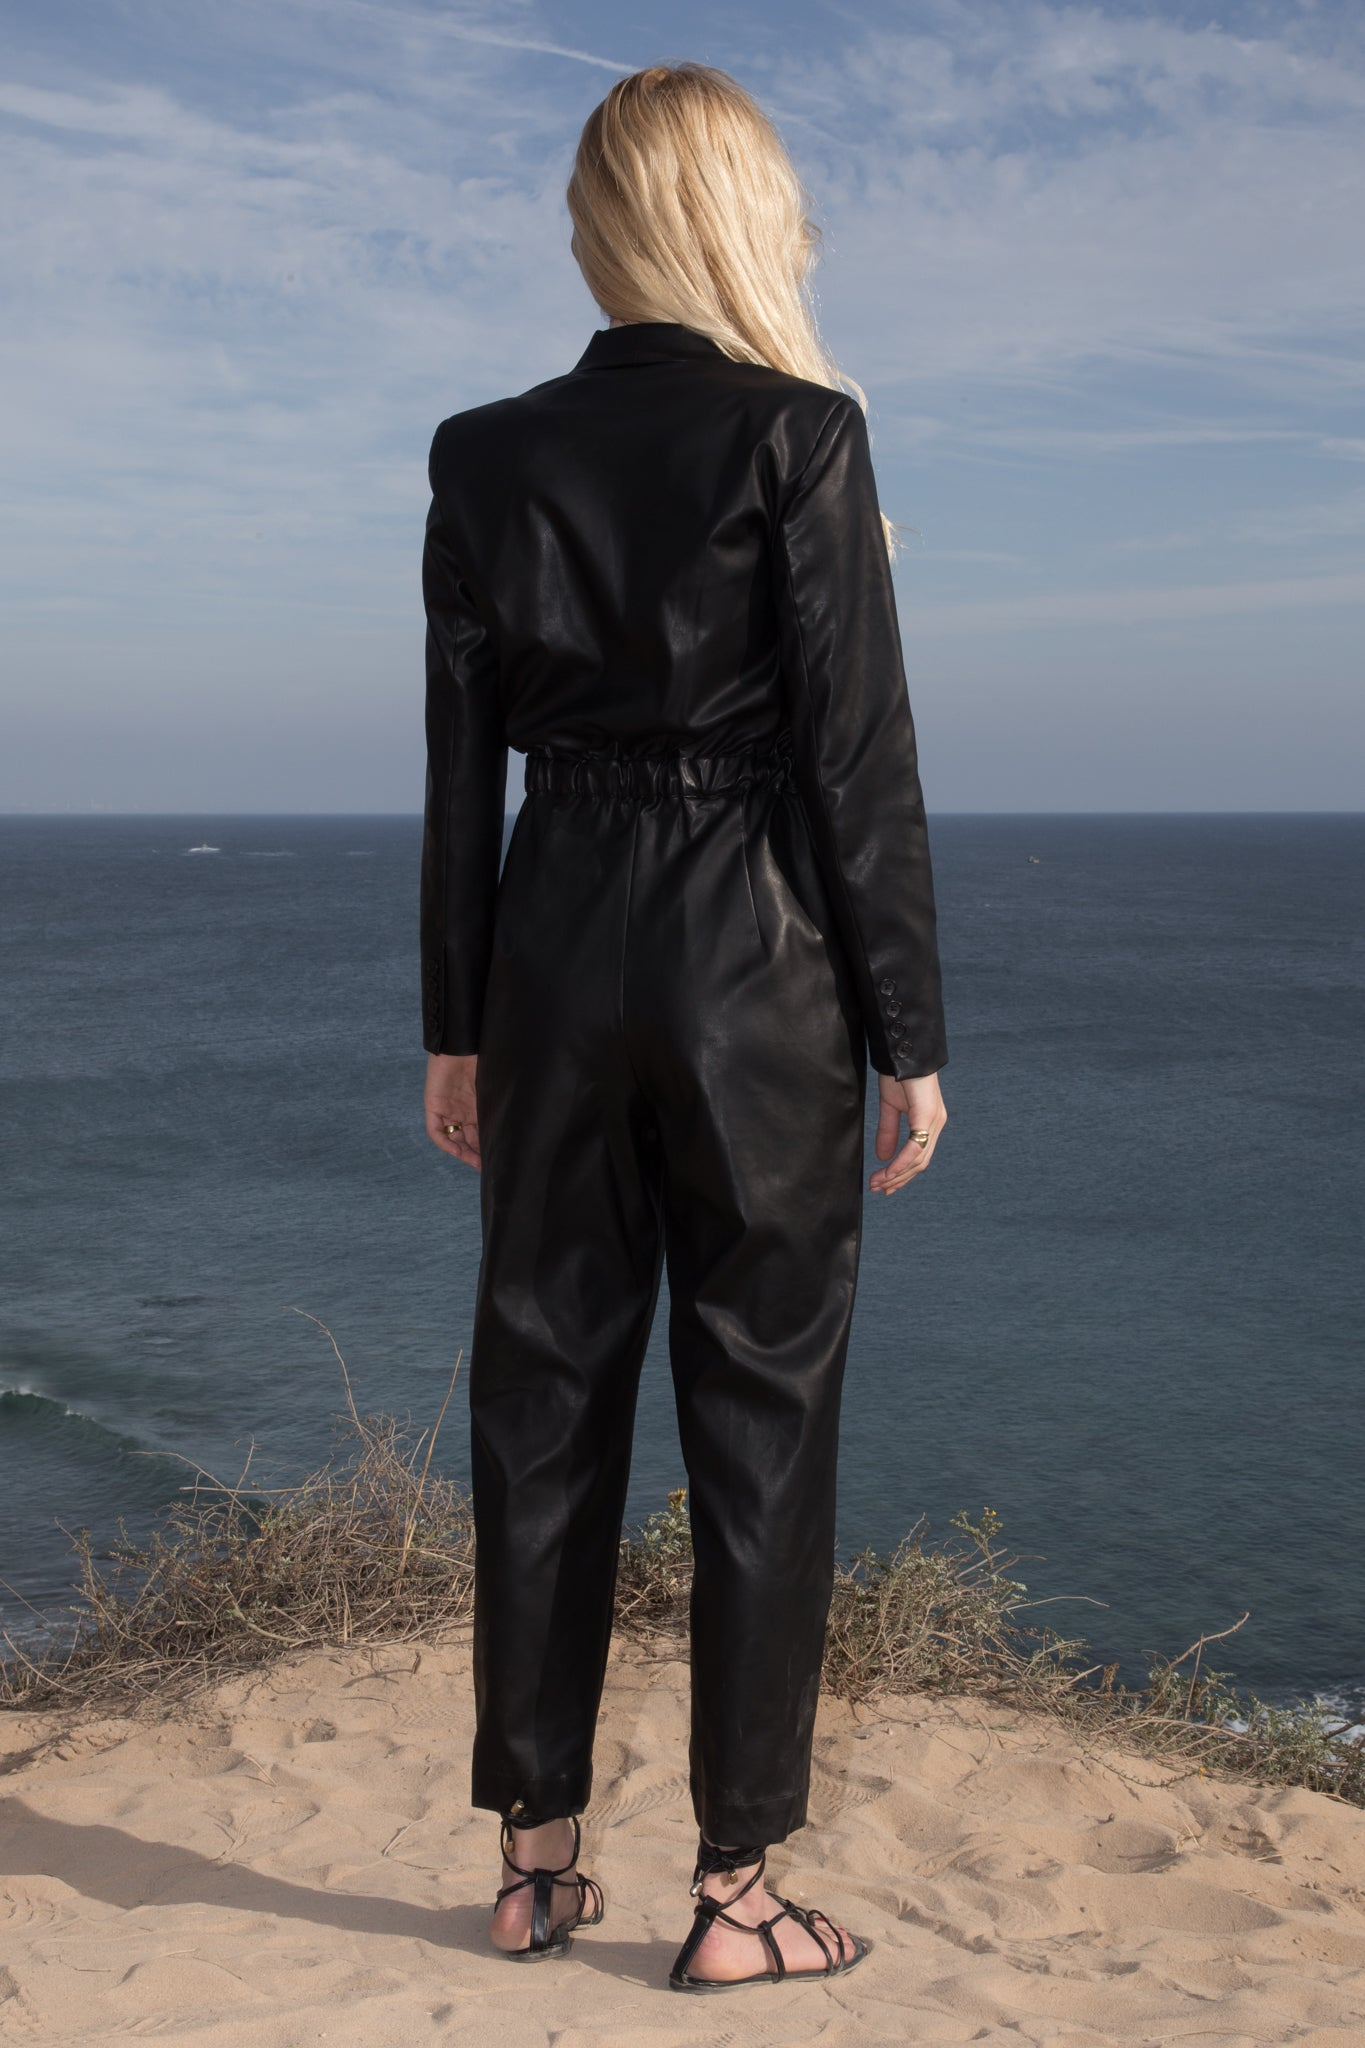 Model wears BLAZER JUMPSUIT - VEGAN LEATHER by Heidi Merrick (Back)